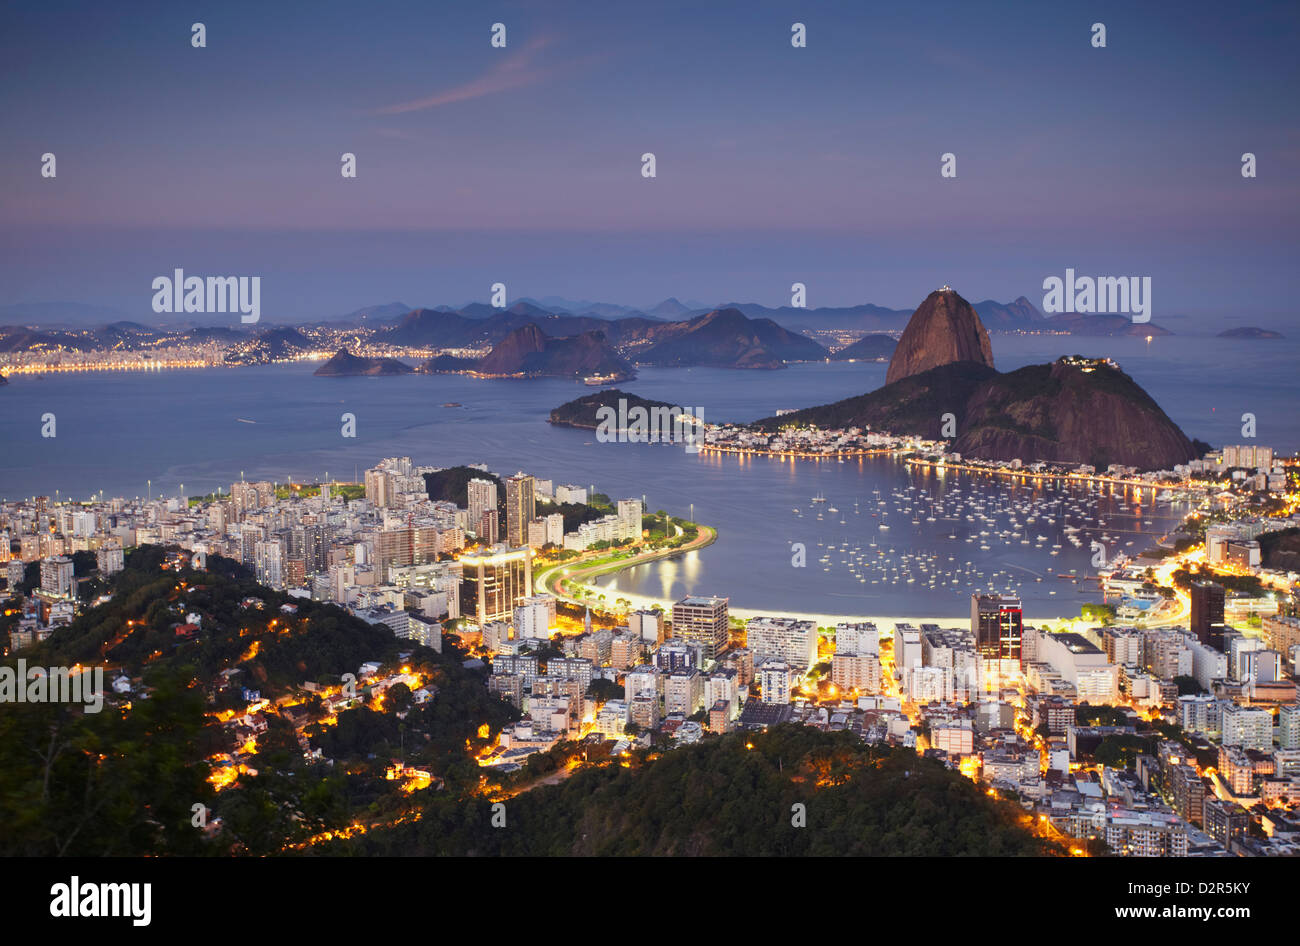 View of Sugar Loaf Mountain (Pao de Acucar) and Botafogo Bay at dusk, Rio de Janeiro, Brazil, South America Stock Photo